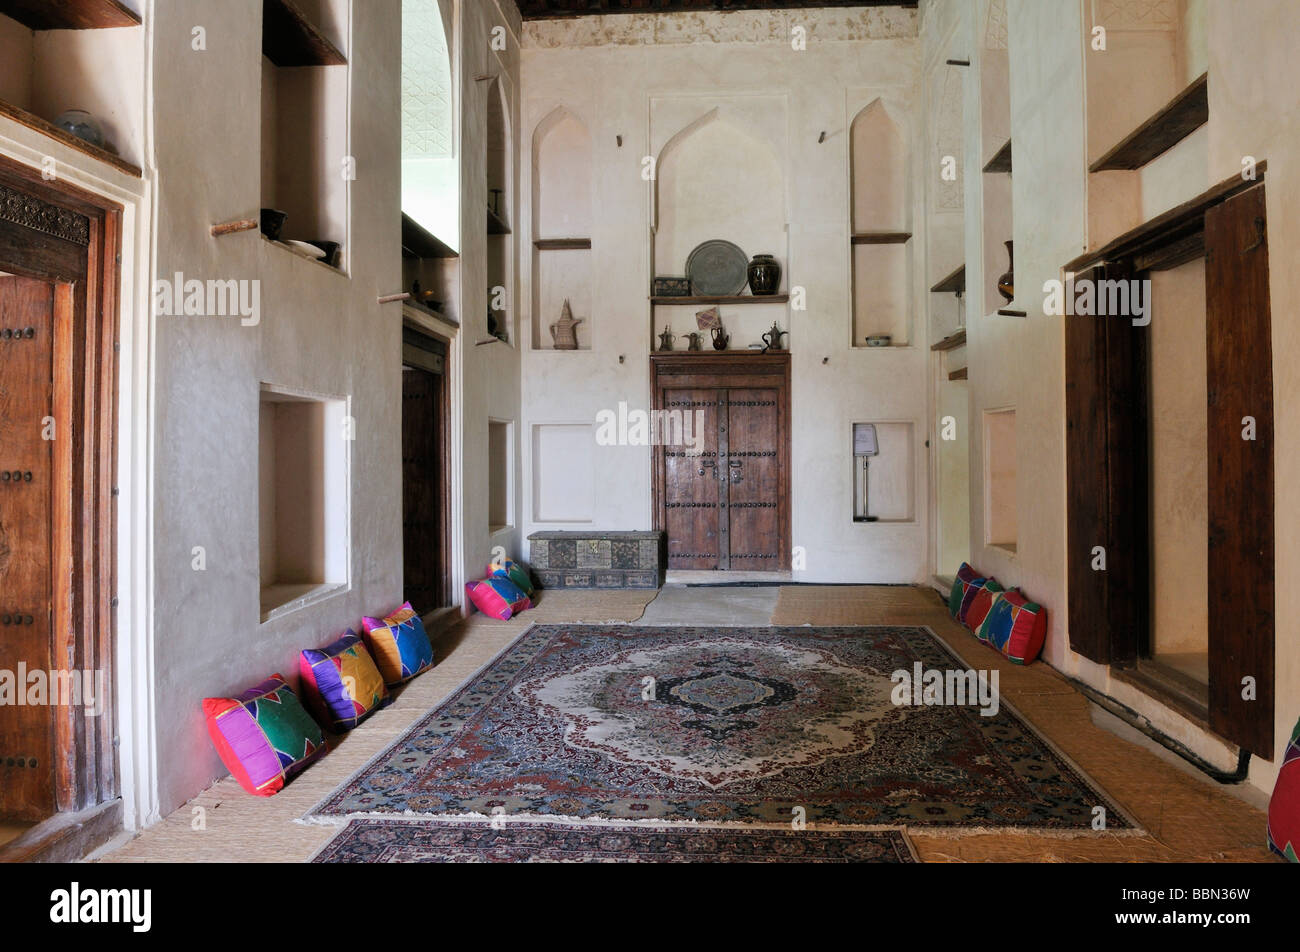 arabian living room center table traditional at jabrin castle or fort dakhliyah region sultanate of oman arabia middle east